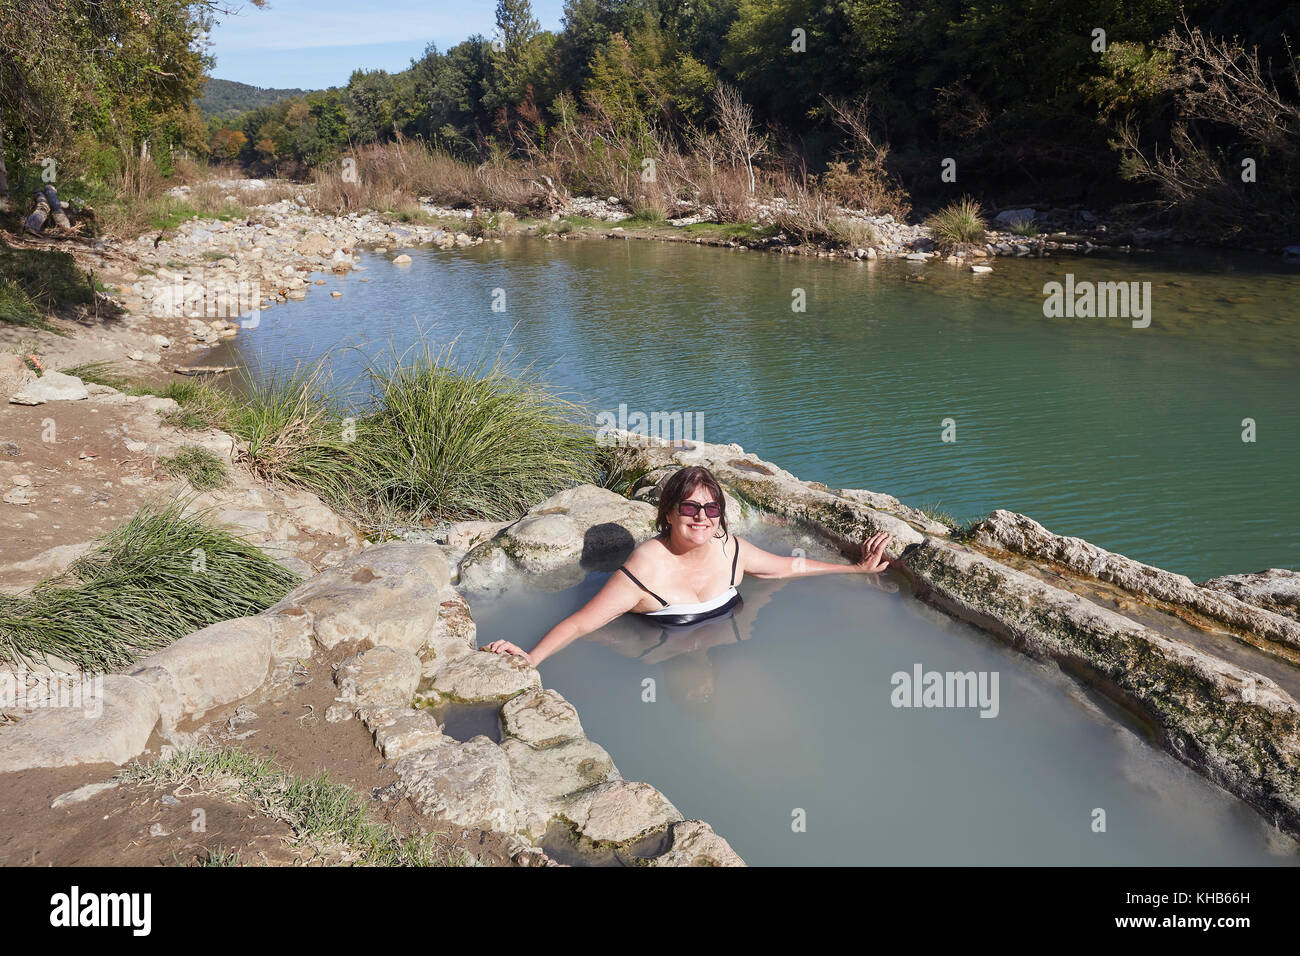 https://c8.alamy.com/comp/KHB66H/bagni-di-petriolo-the-hot-springs-on-the-river-farma-district-of-monticiano-KHB66H.jpg